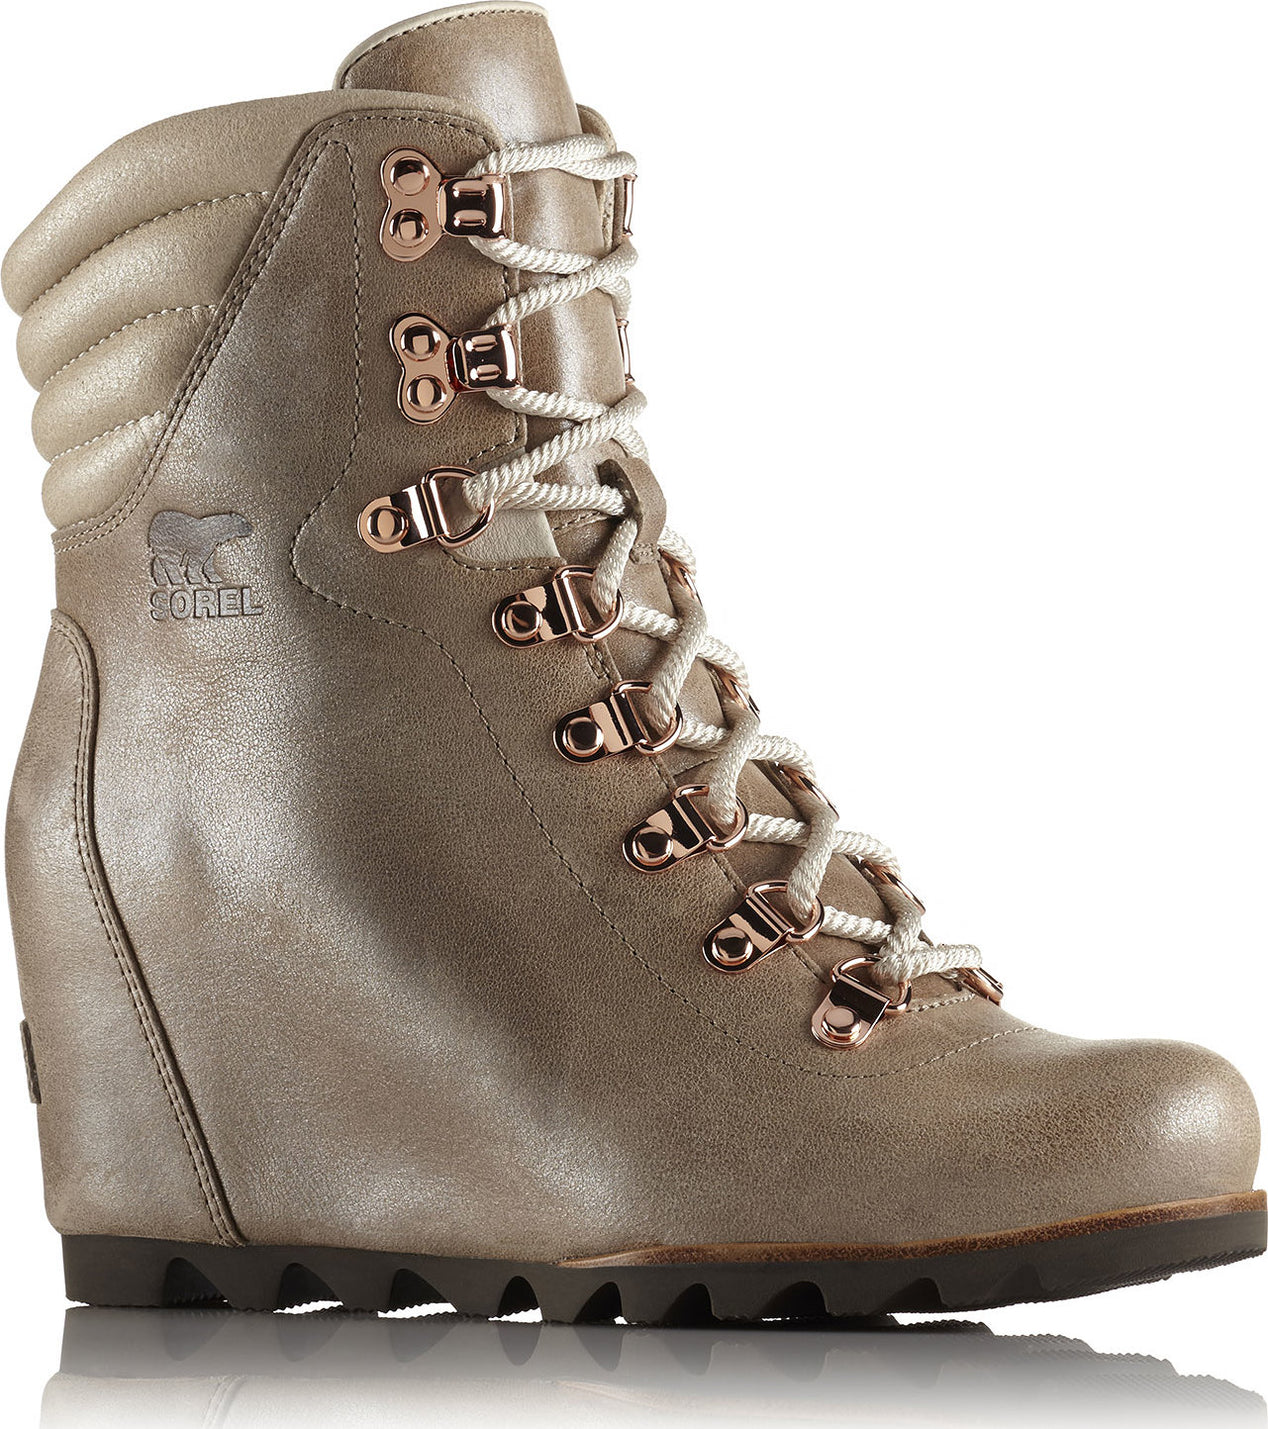 5c338421f58e00 Conquest Wedge Holiday Boots - Women s Beach - Fawn ...